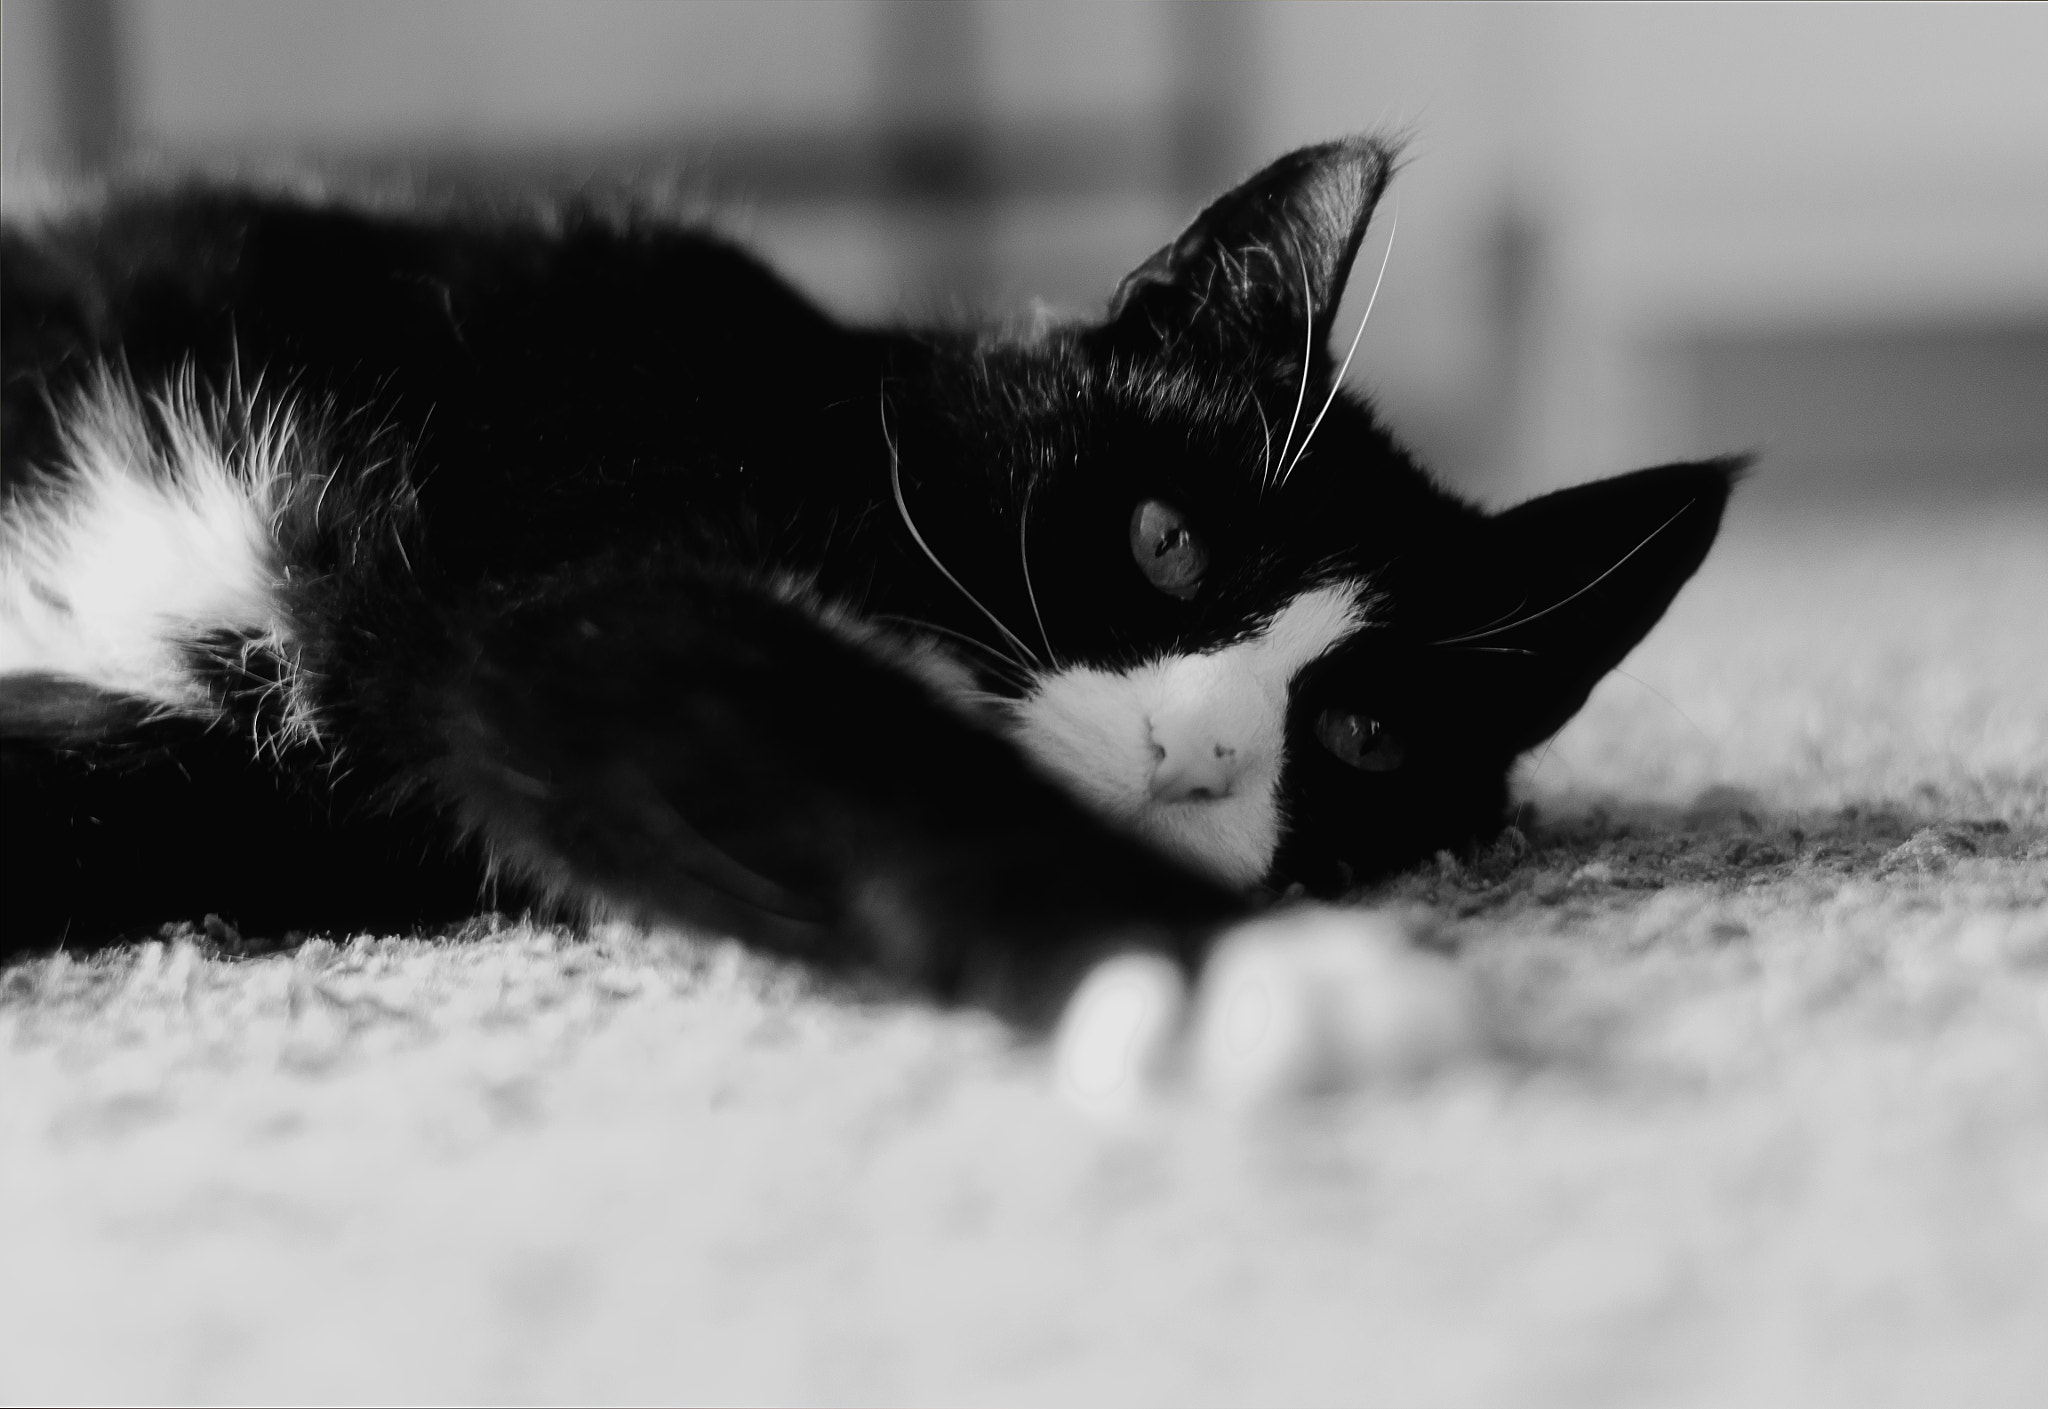 Photograph Cat by Christian Lindemann on 500px